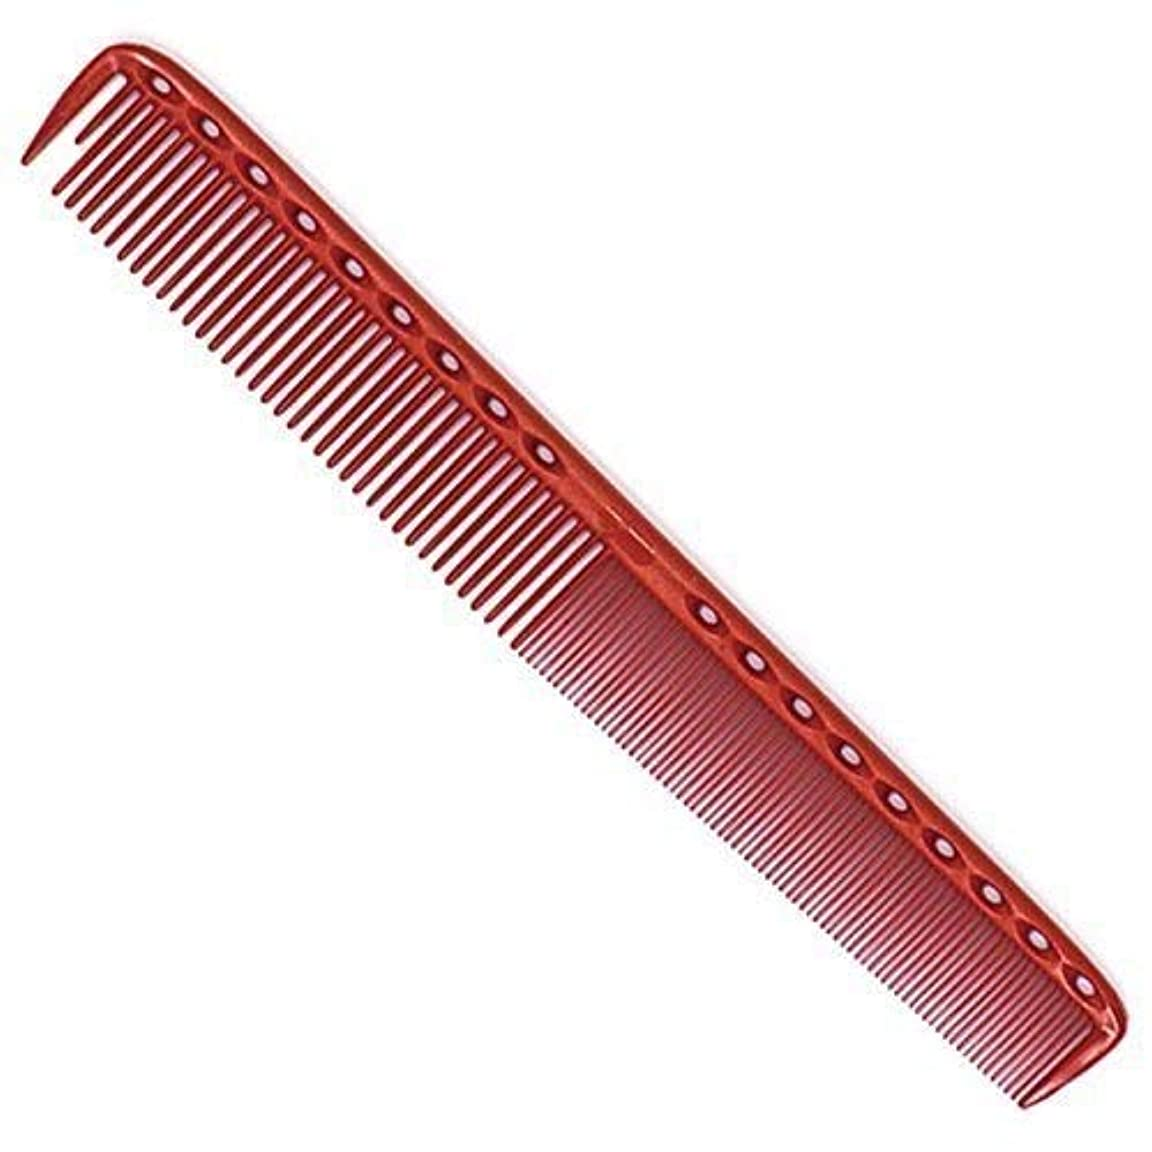 YS Park 335 Extra Long Fine Cutting Comb 8.5